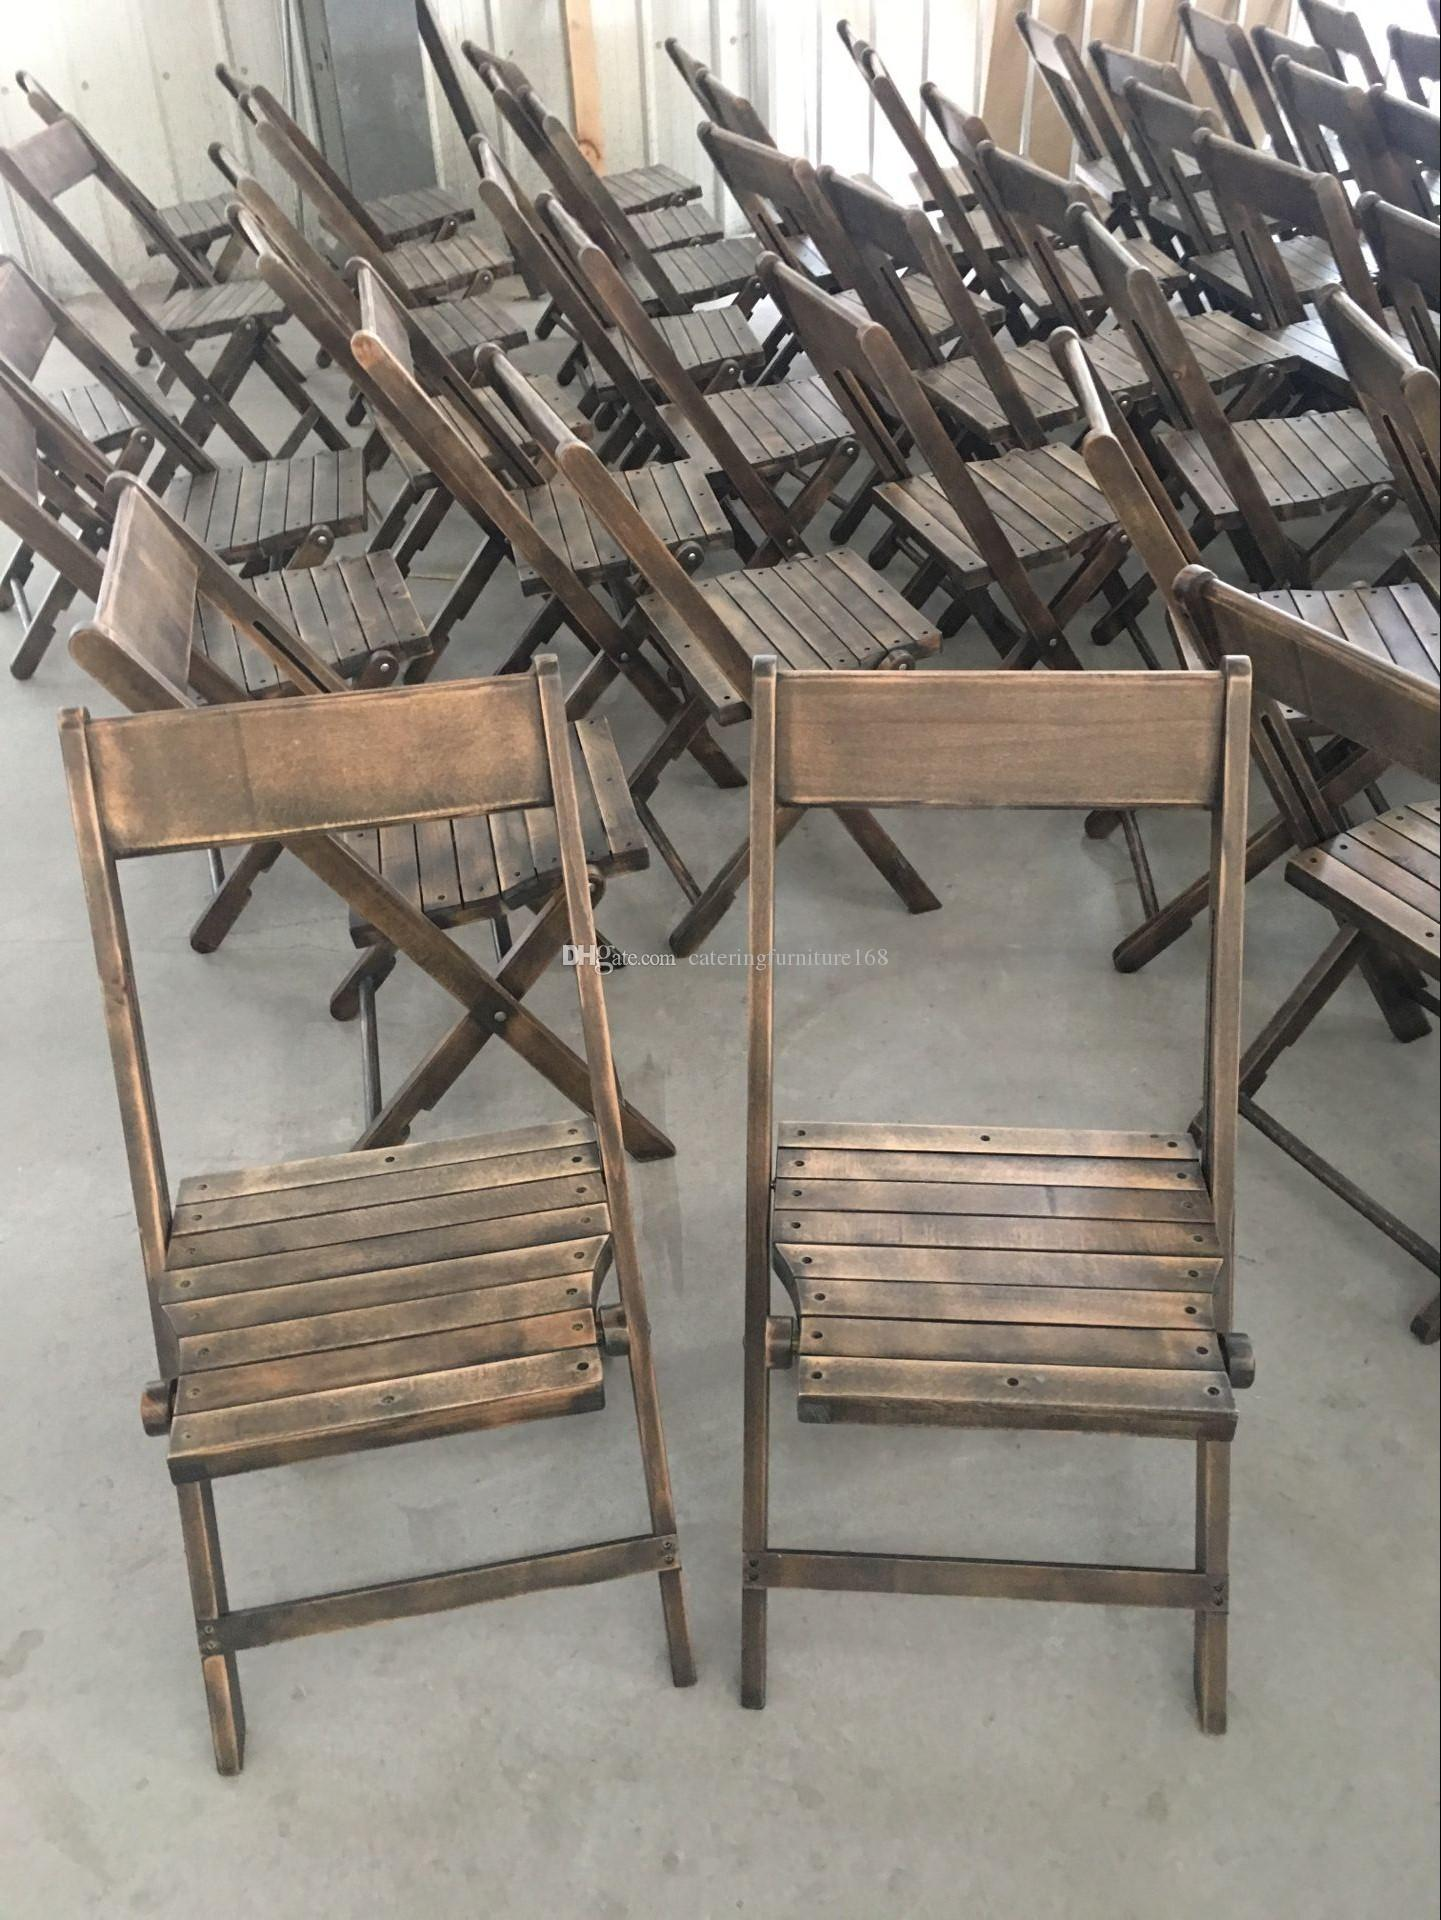 Wooden Vintage Distressed Folding Chairs for Garden Wooden Distressed Folding  Chairs for Gar Vintage Wooden Folding Chair for Events Portable Folding  Chairs ... - Wooden Vintage Distressed Folding Chairs For Garden Wooden